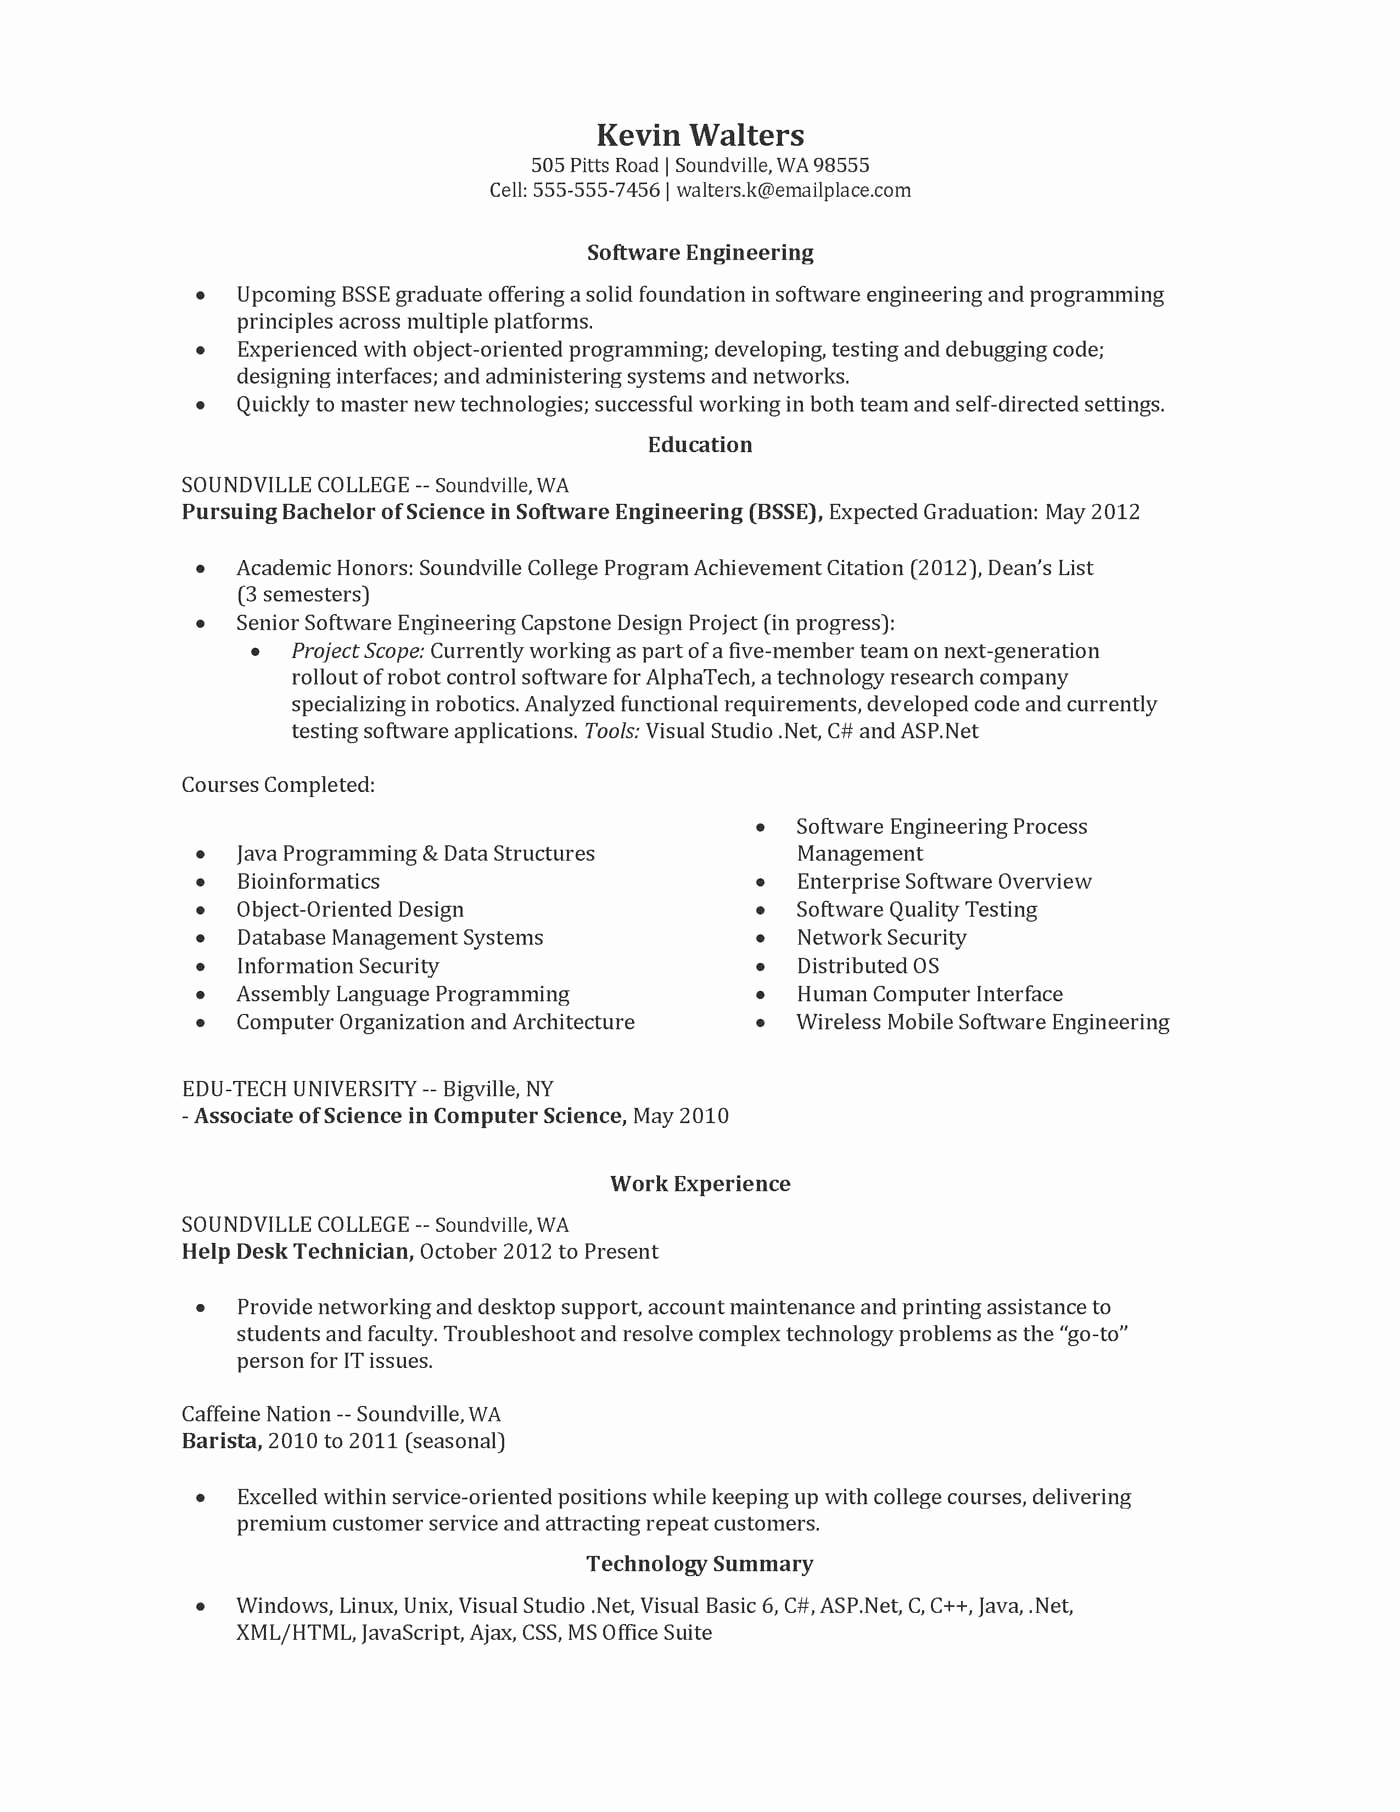 Engineering Covering Letter Template - Business Cover Letter Template New Lpn Resume Sample New Line